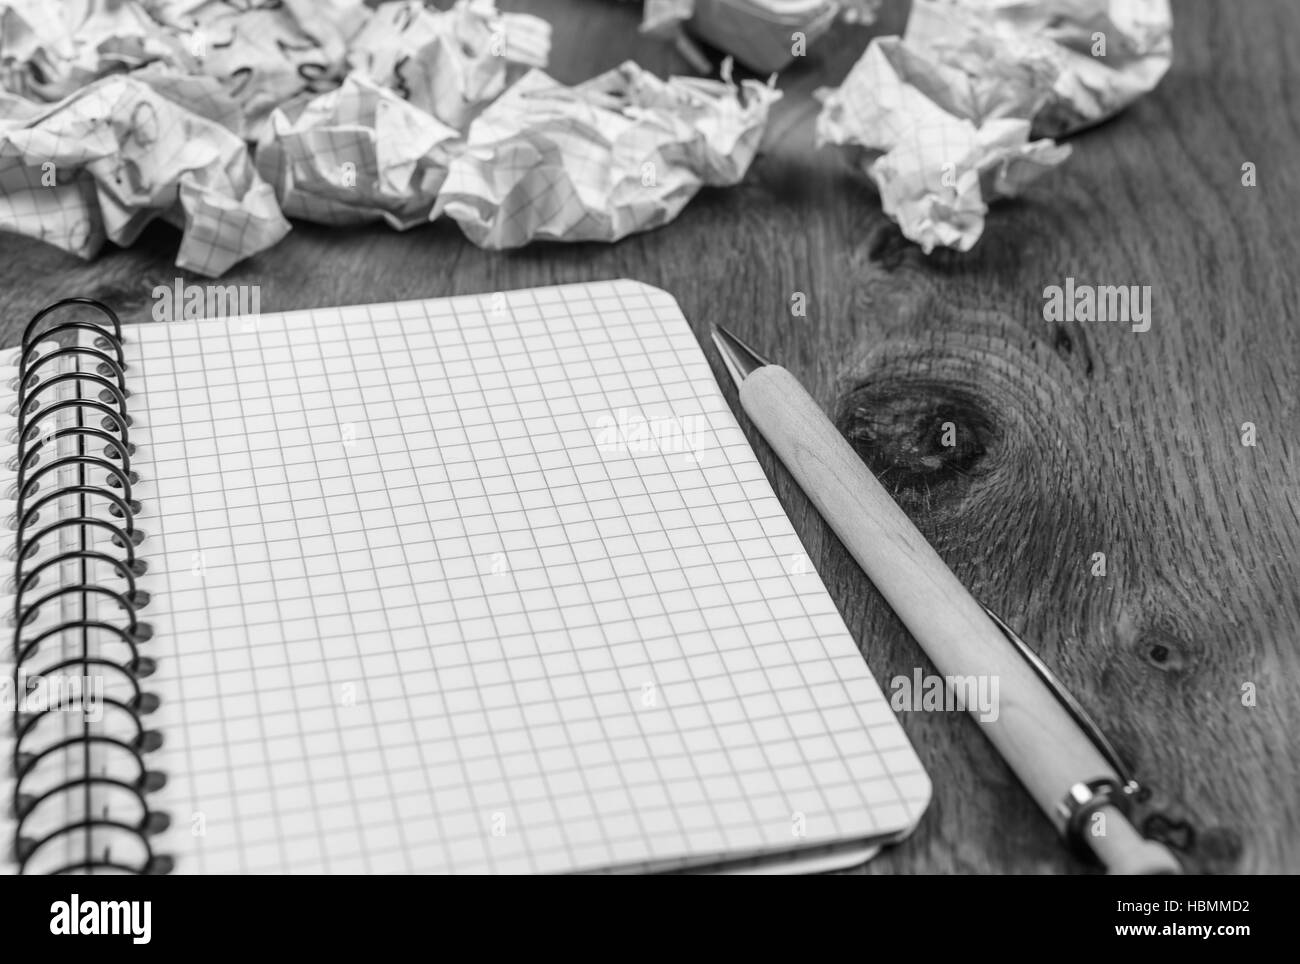 Spiral notebook and crumpled drafts - Stock Image